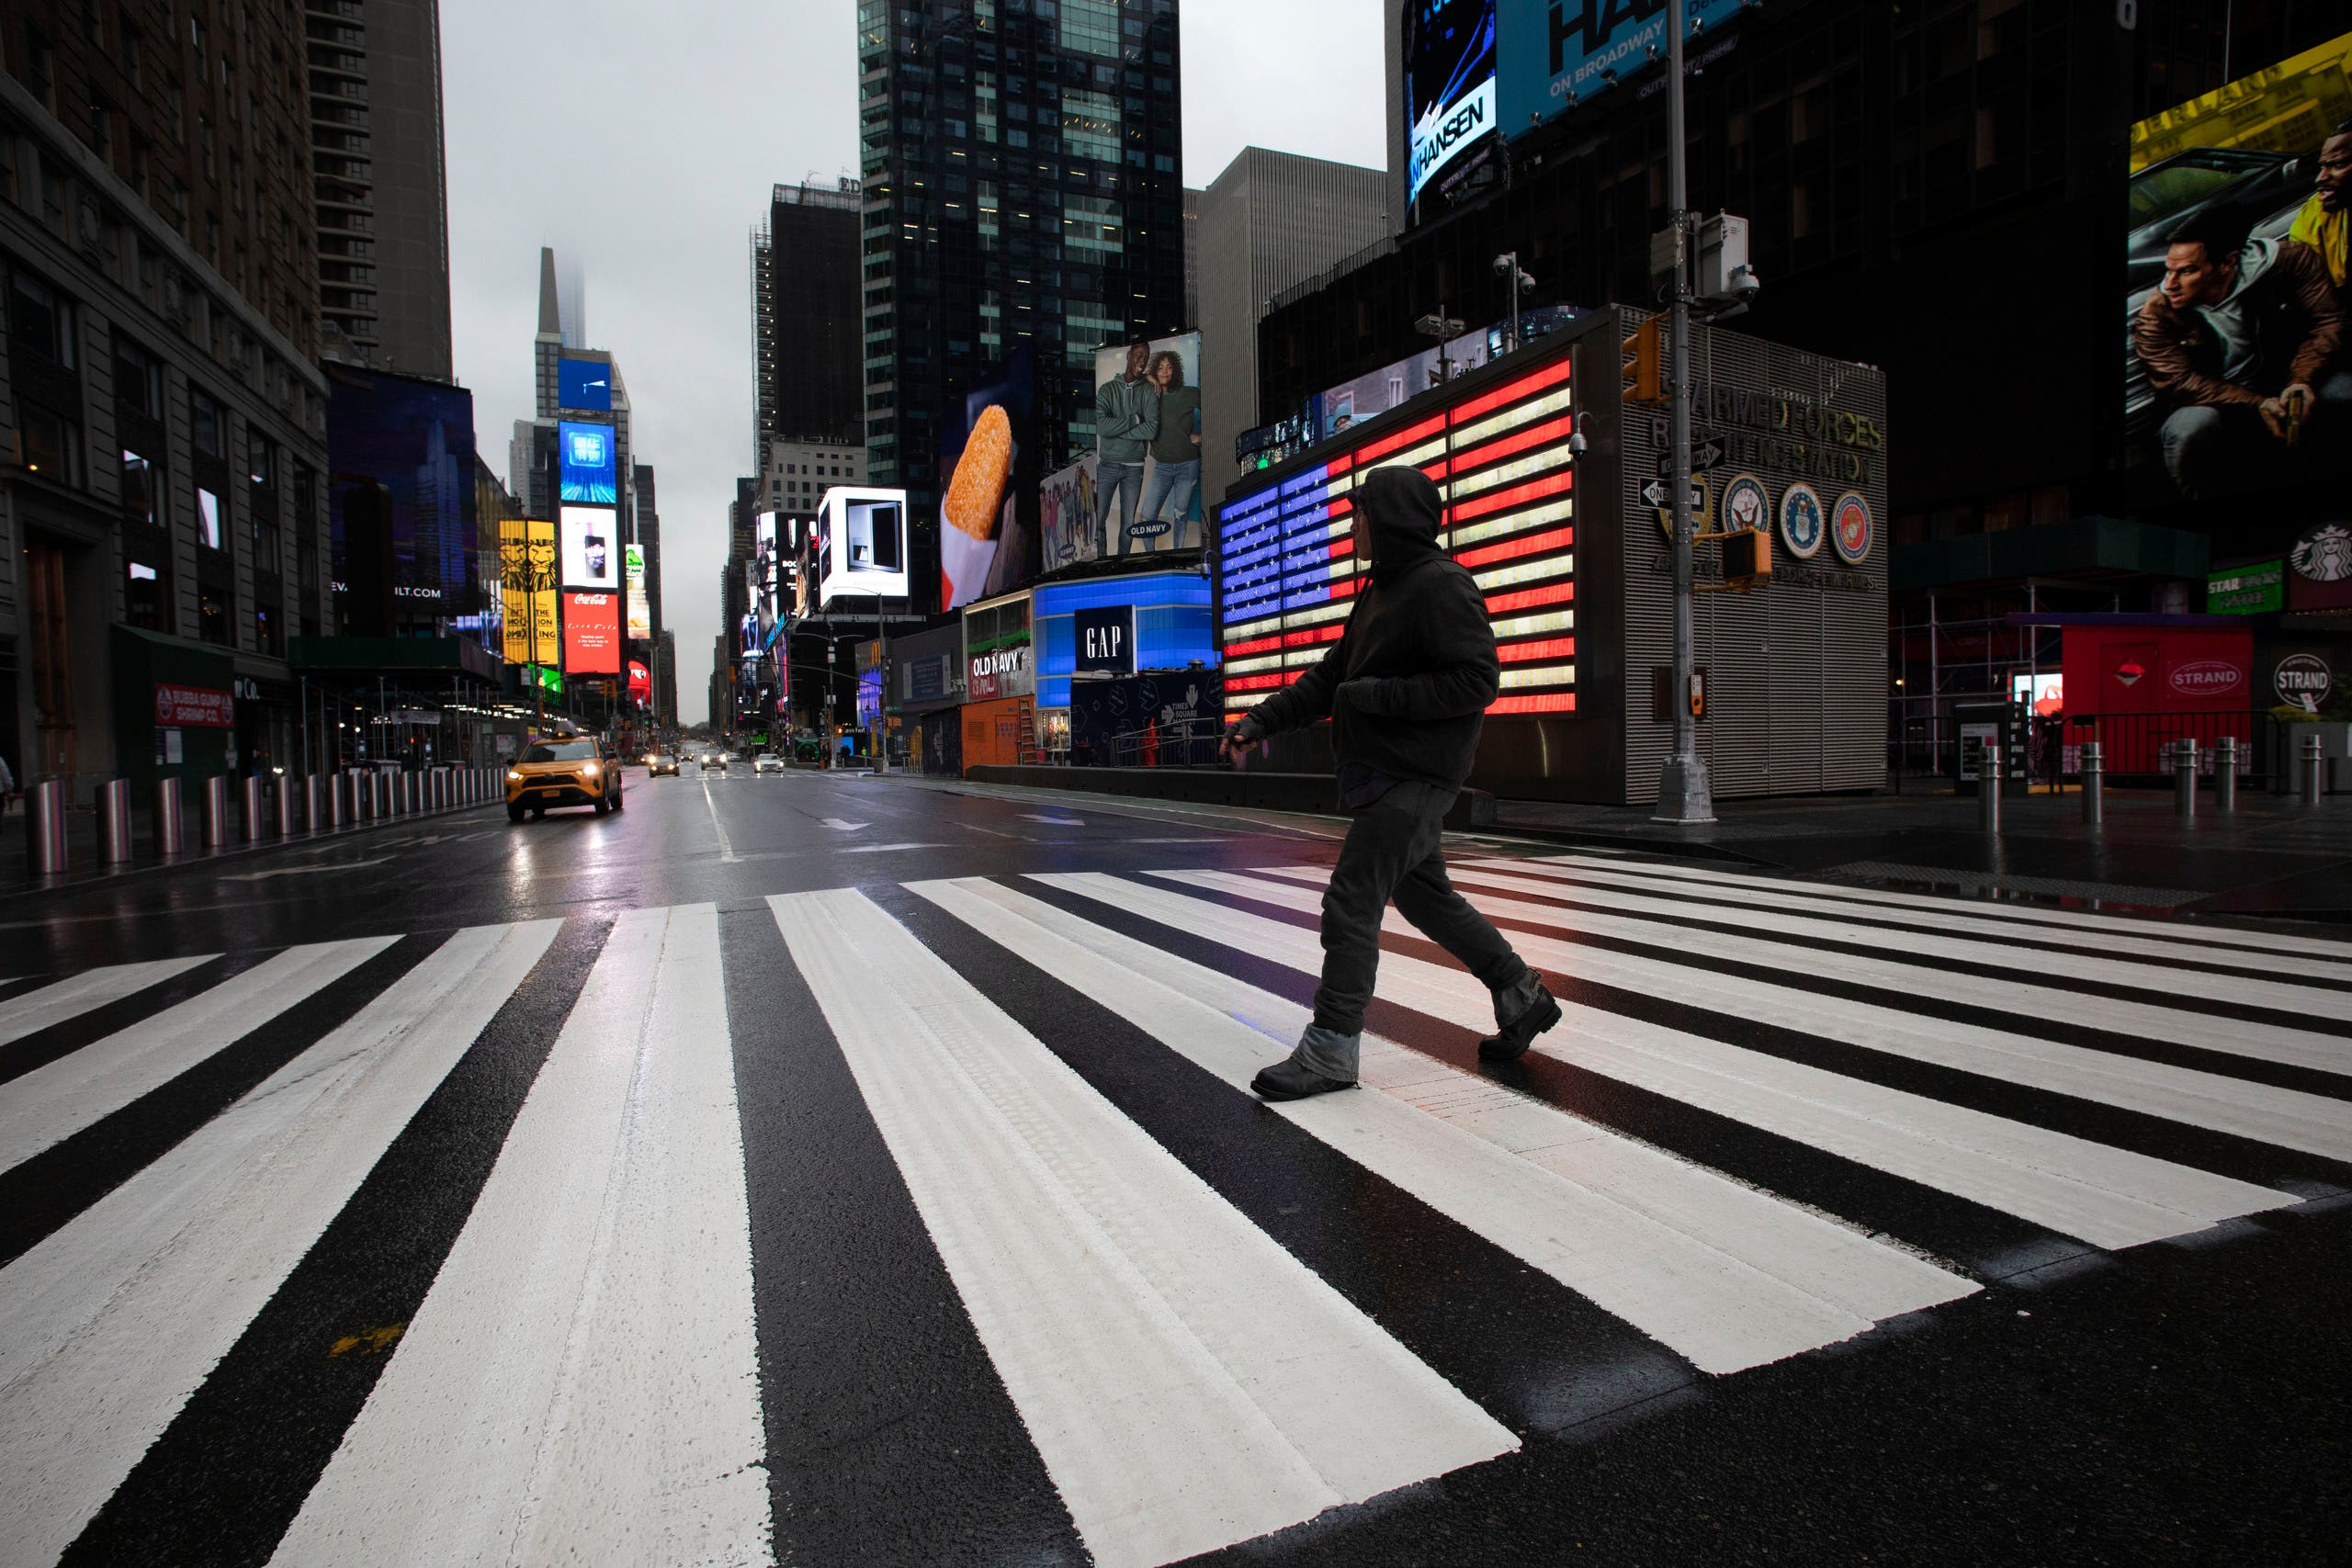 A man crosses the street in a nearly empty Times Square, which is usually very crowded on a weekday morning, Monday, March 23, 2020 in New York. (AP)